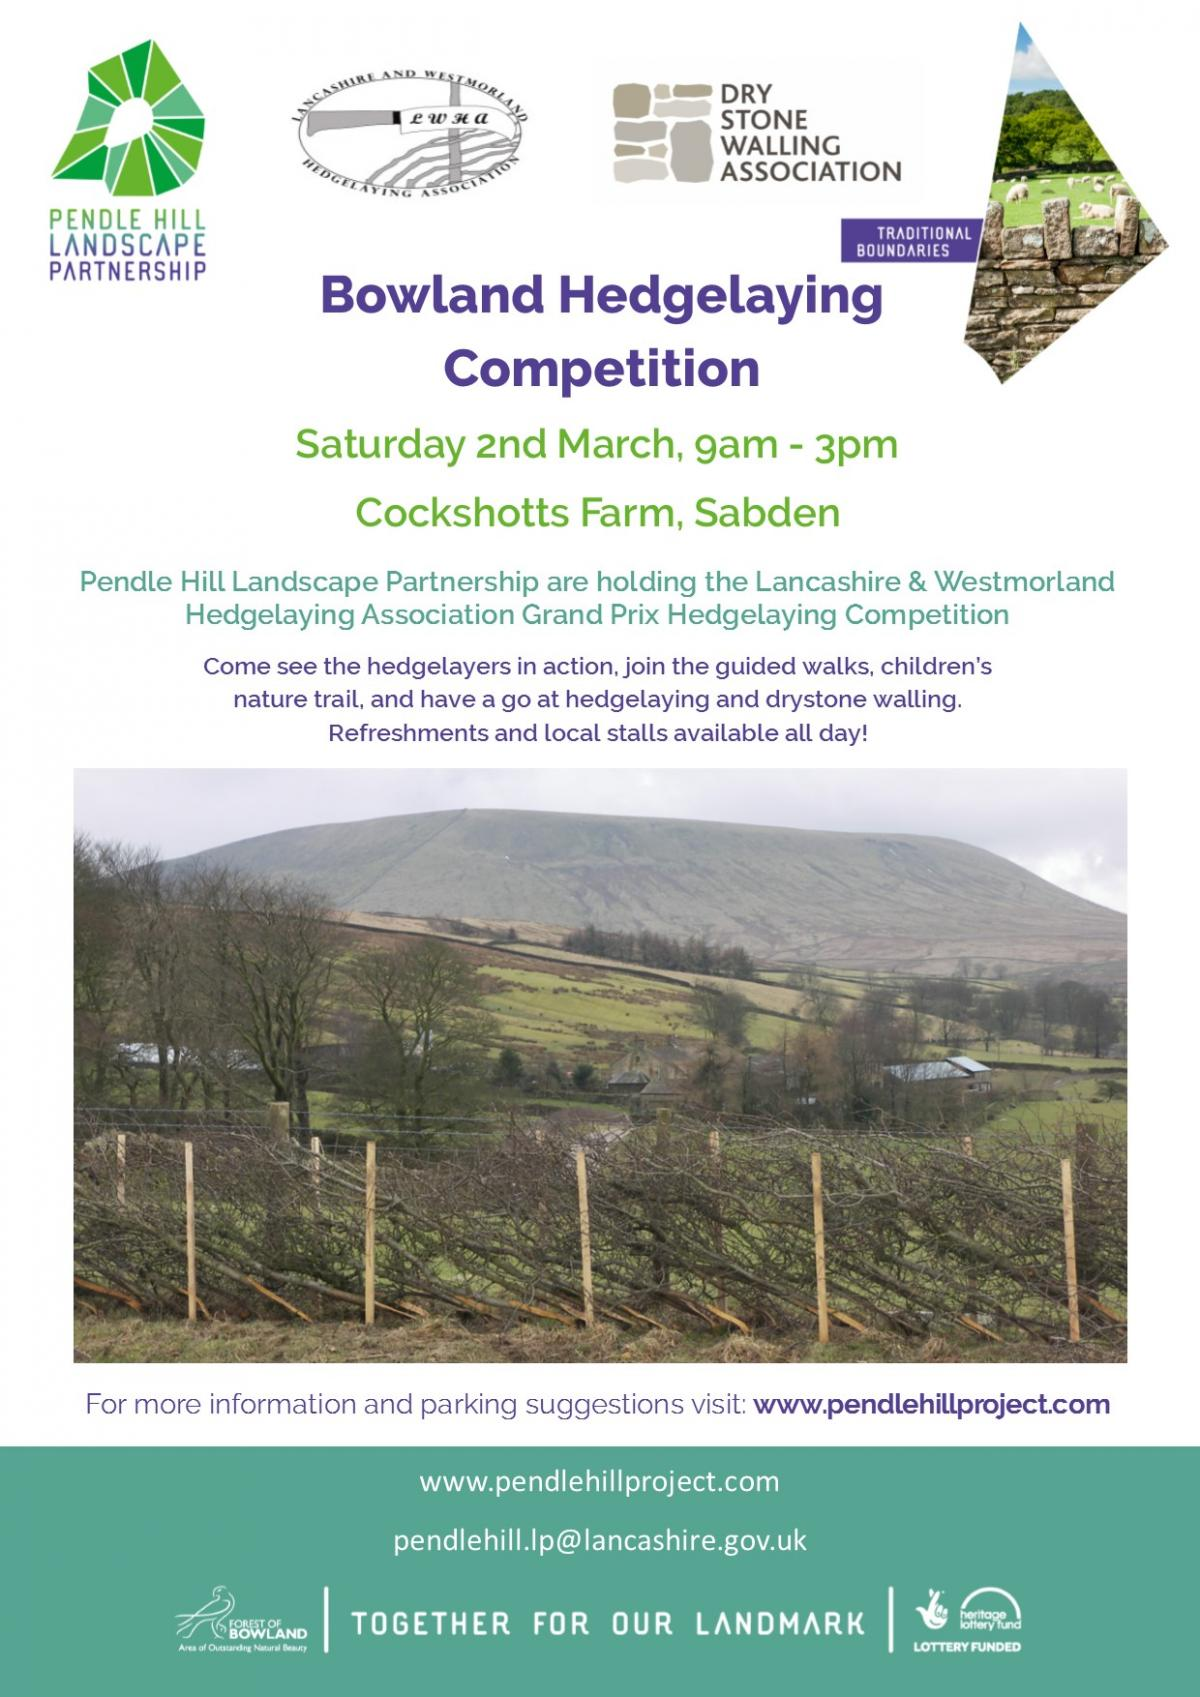 Bowland Hedgelaying Competition Event Poster